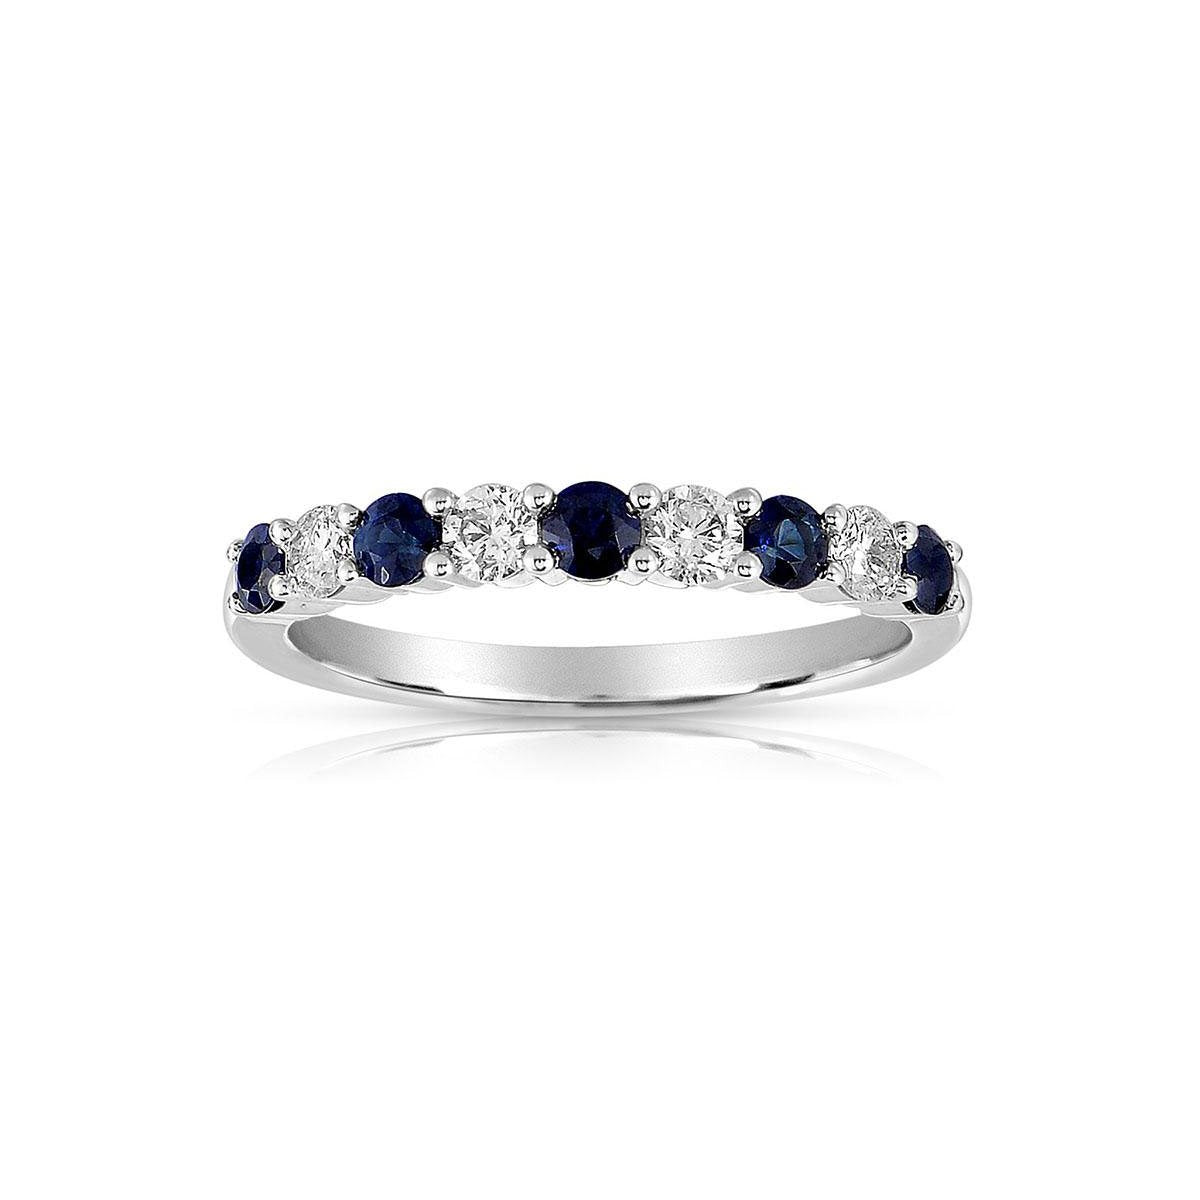 Sabel Collection 14K White Gold Sapphire and Diamond Ring